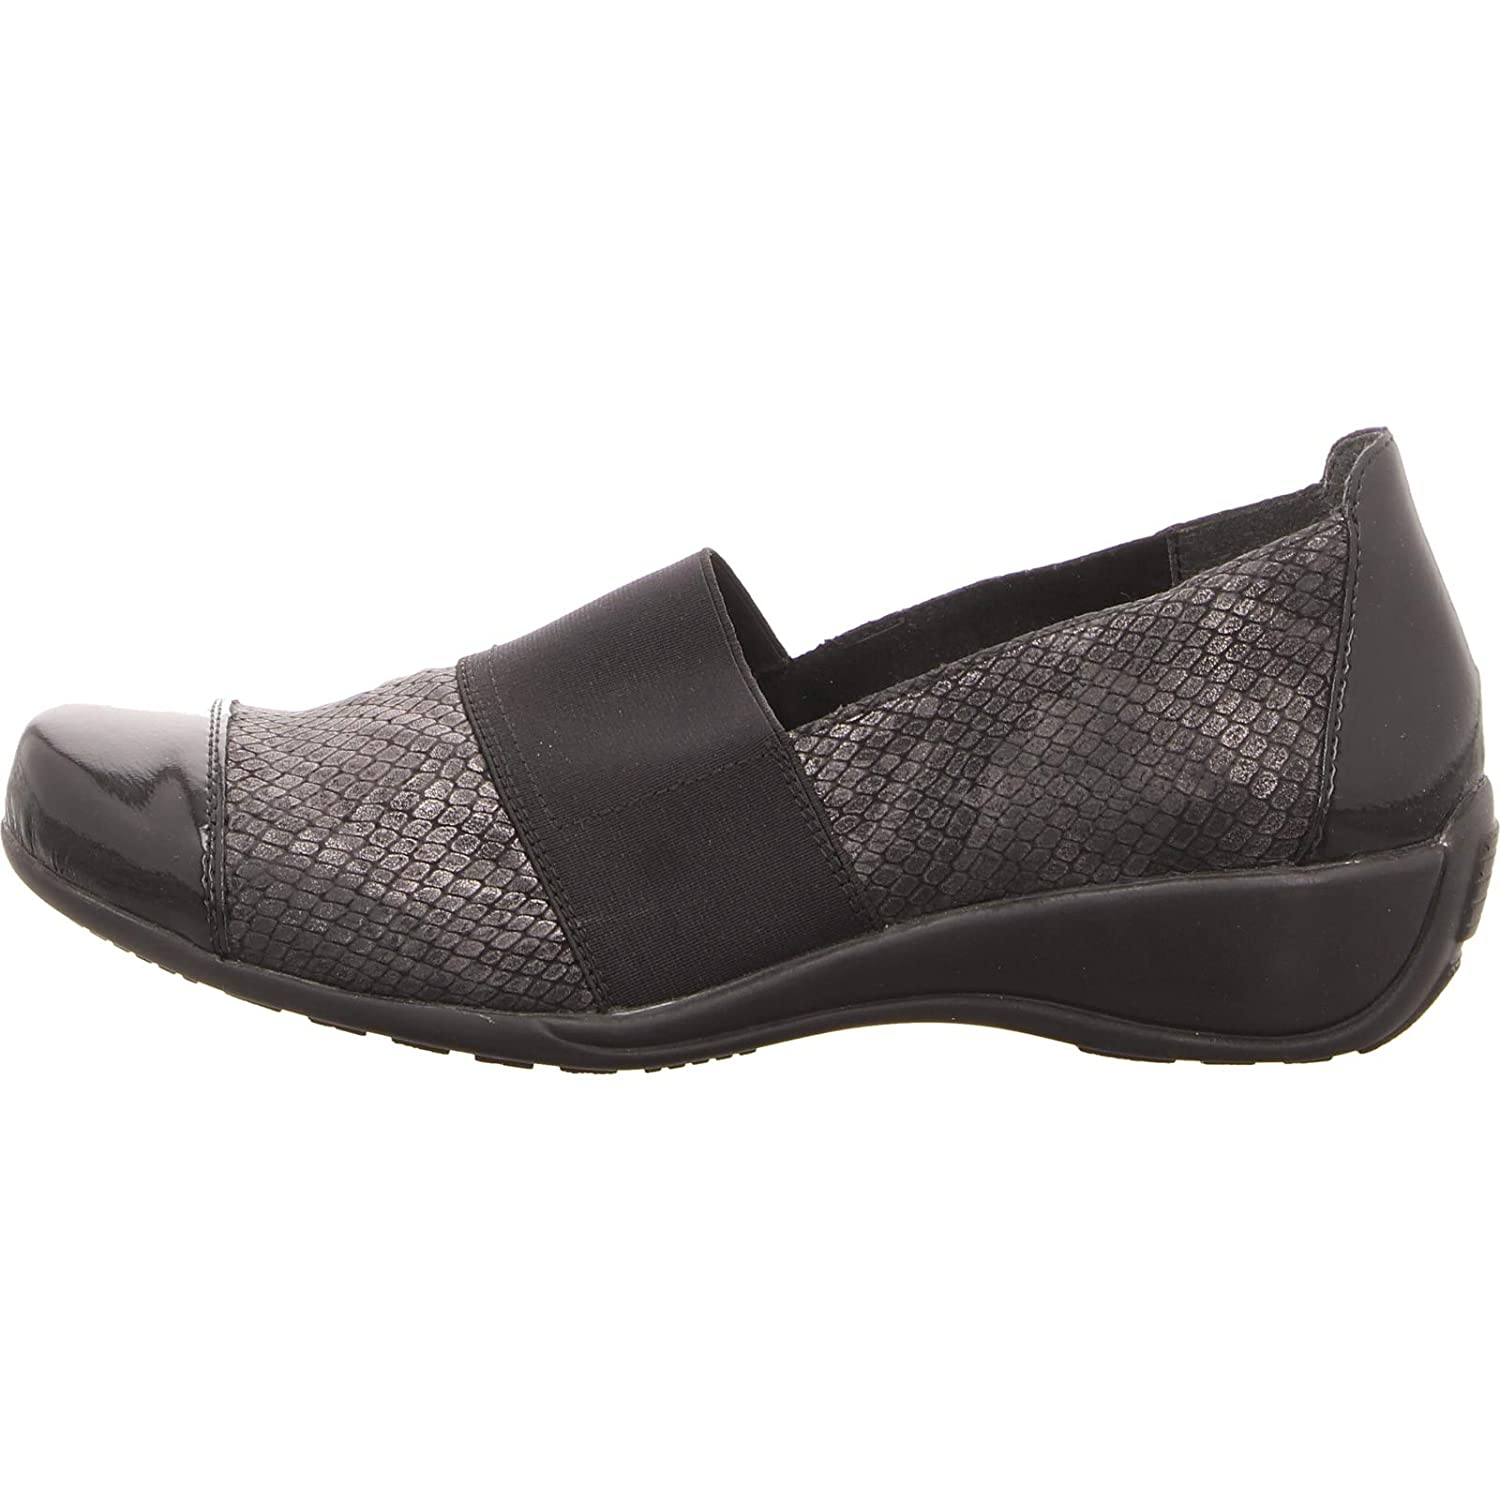 9ddb0997 REMONTE Women's Leather Elasticated Slip On Shoe (R9827-45): Amazon.co.uk:  Shoes & Bags